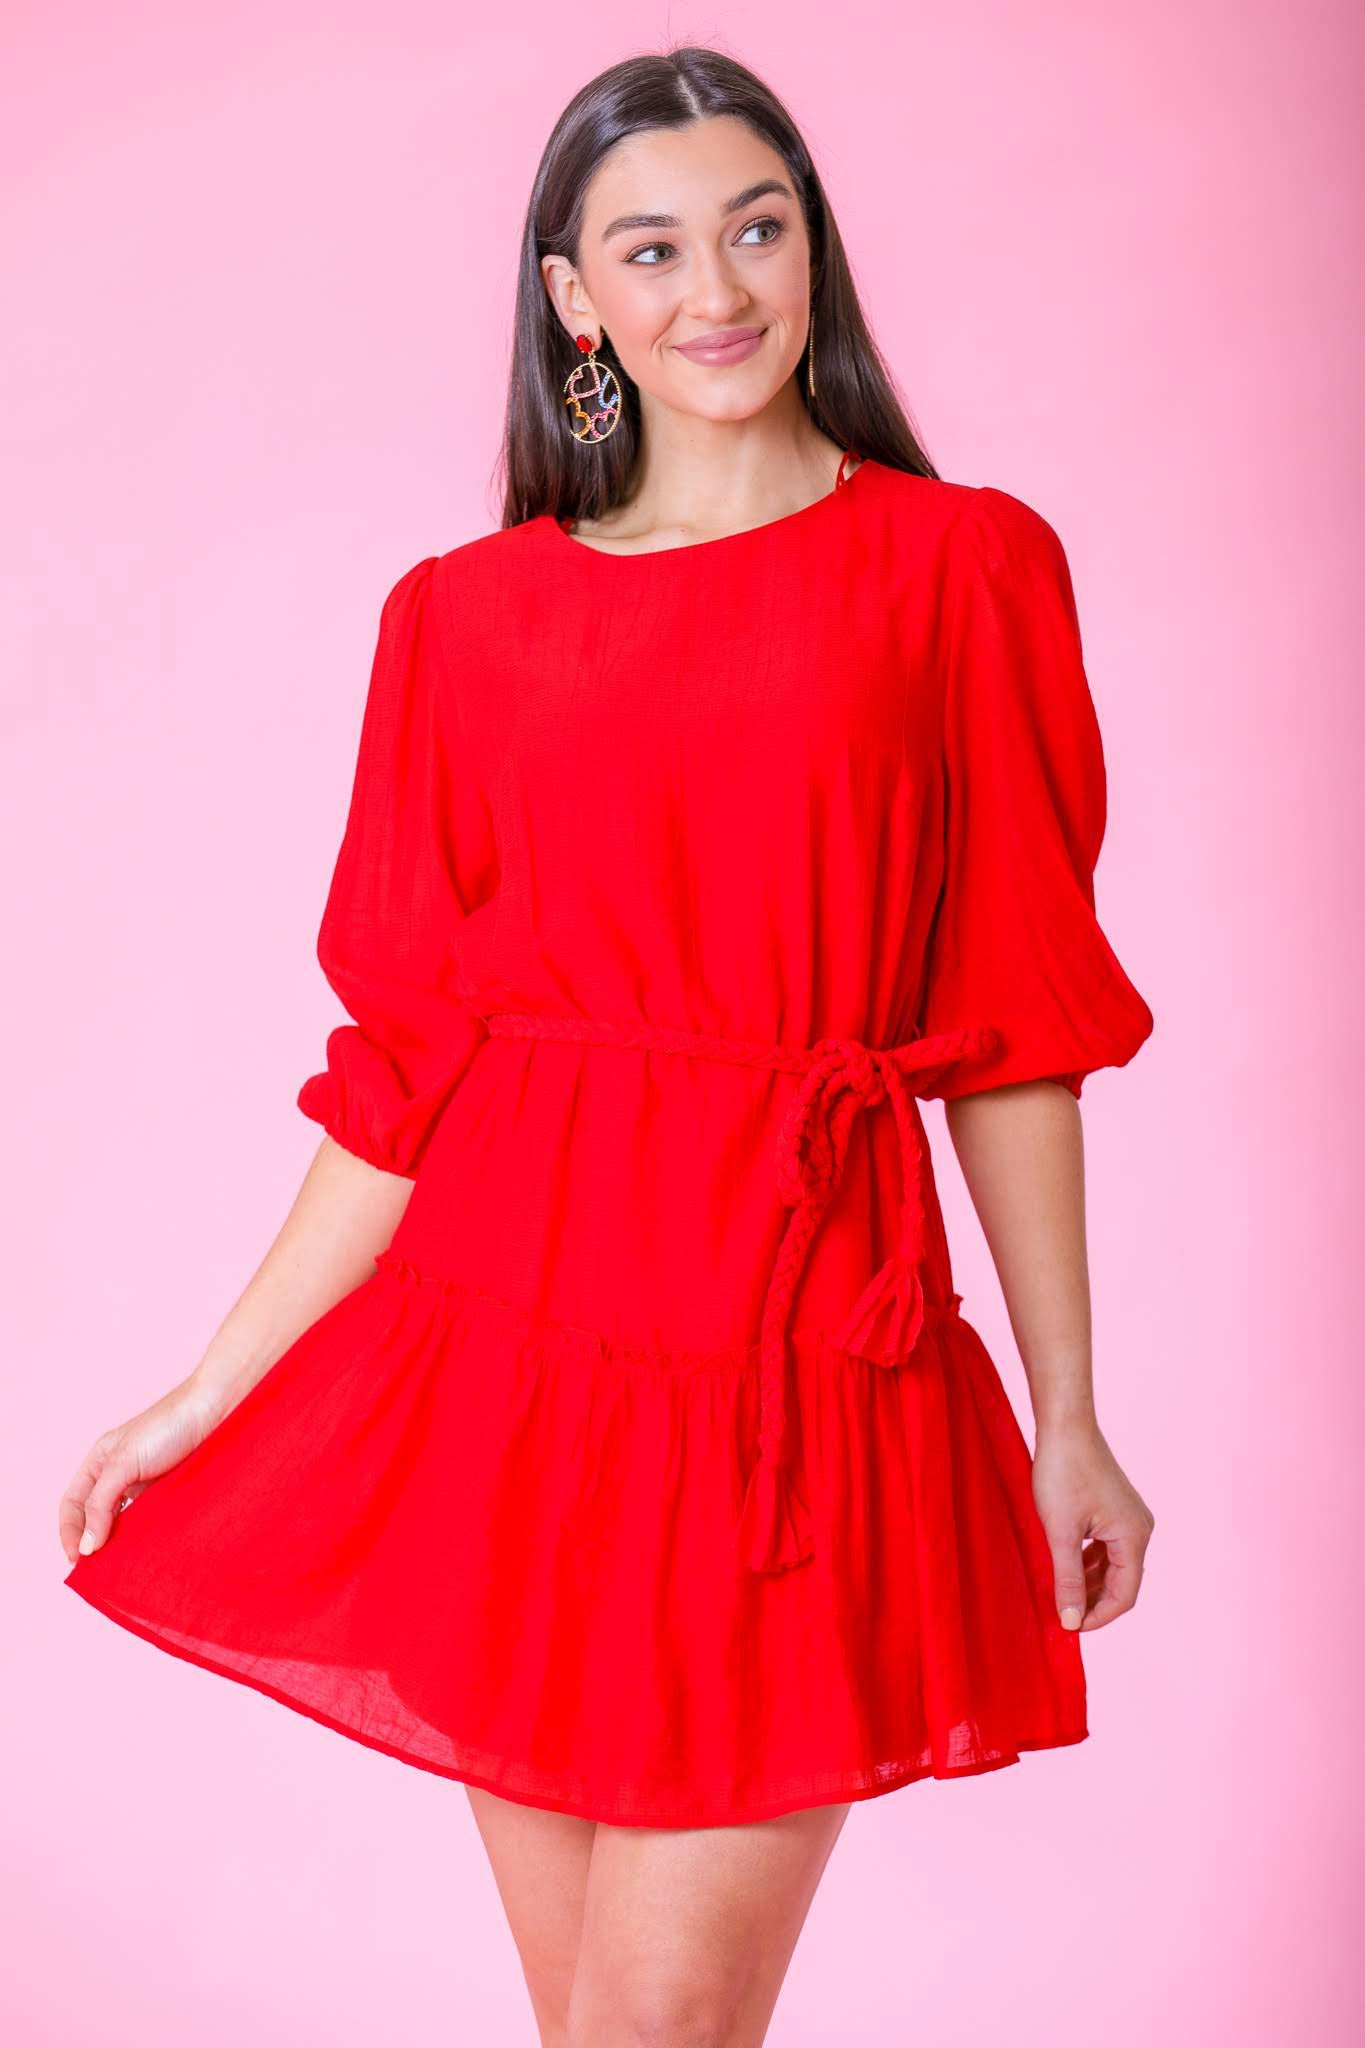 Rose Red Ruffle Hem Rope Belt Dress - Dresses - Wight Elephant Boutique